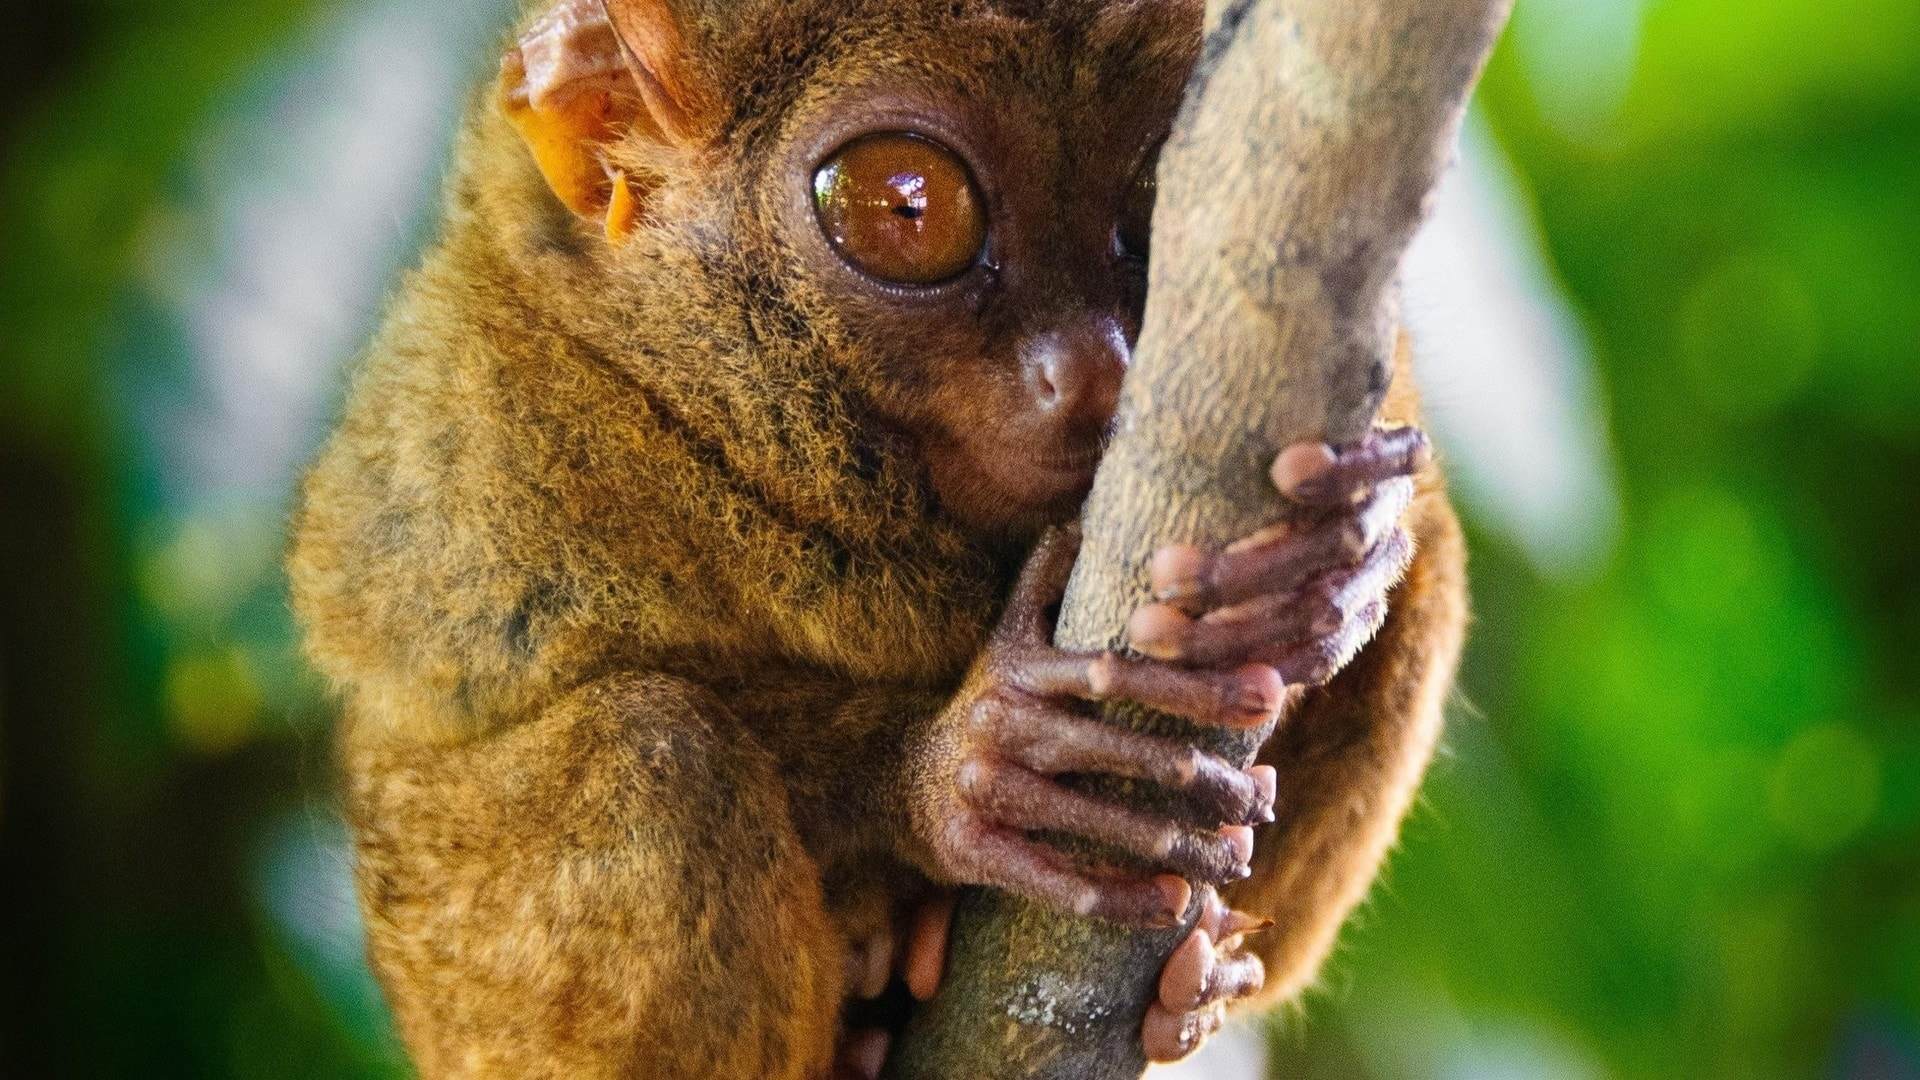 Tarsier Wallpaper